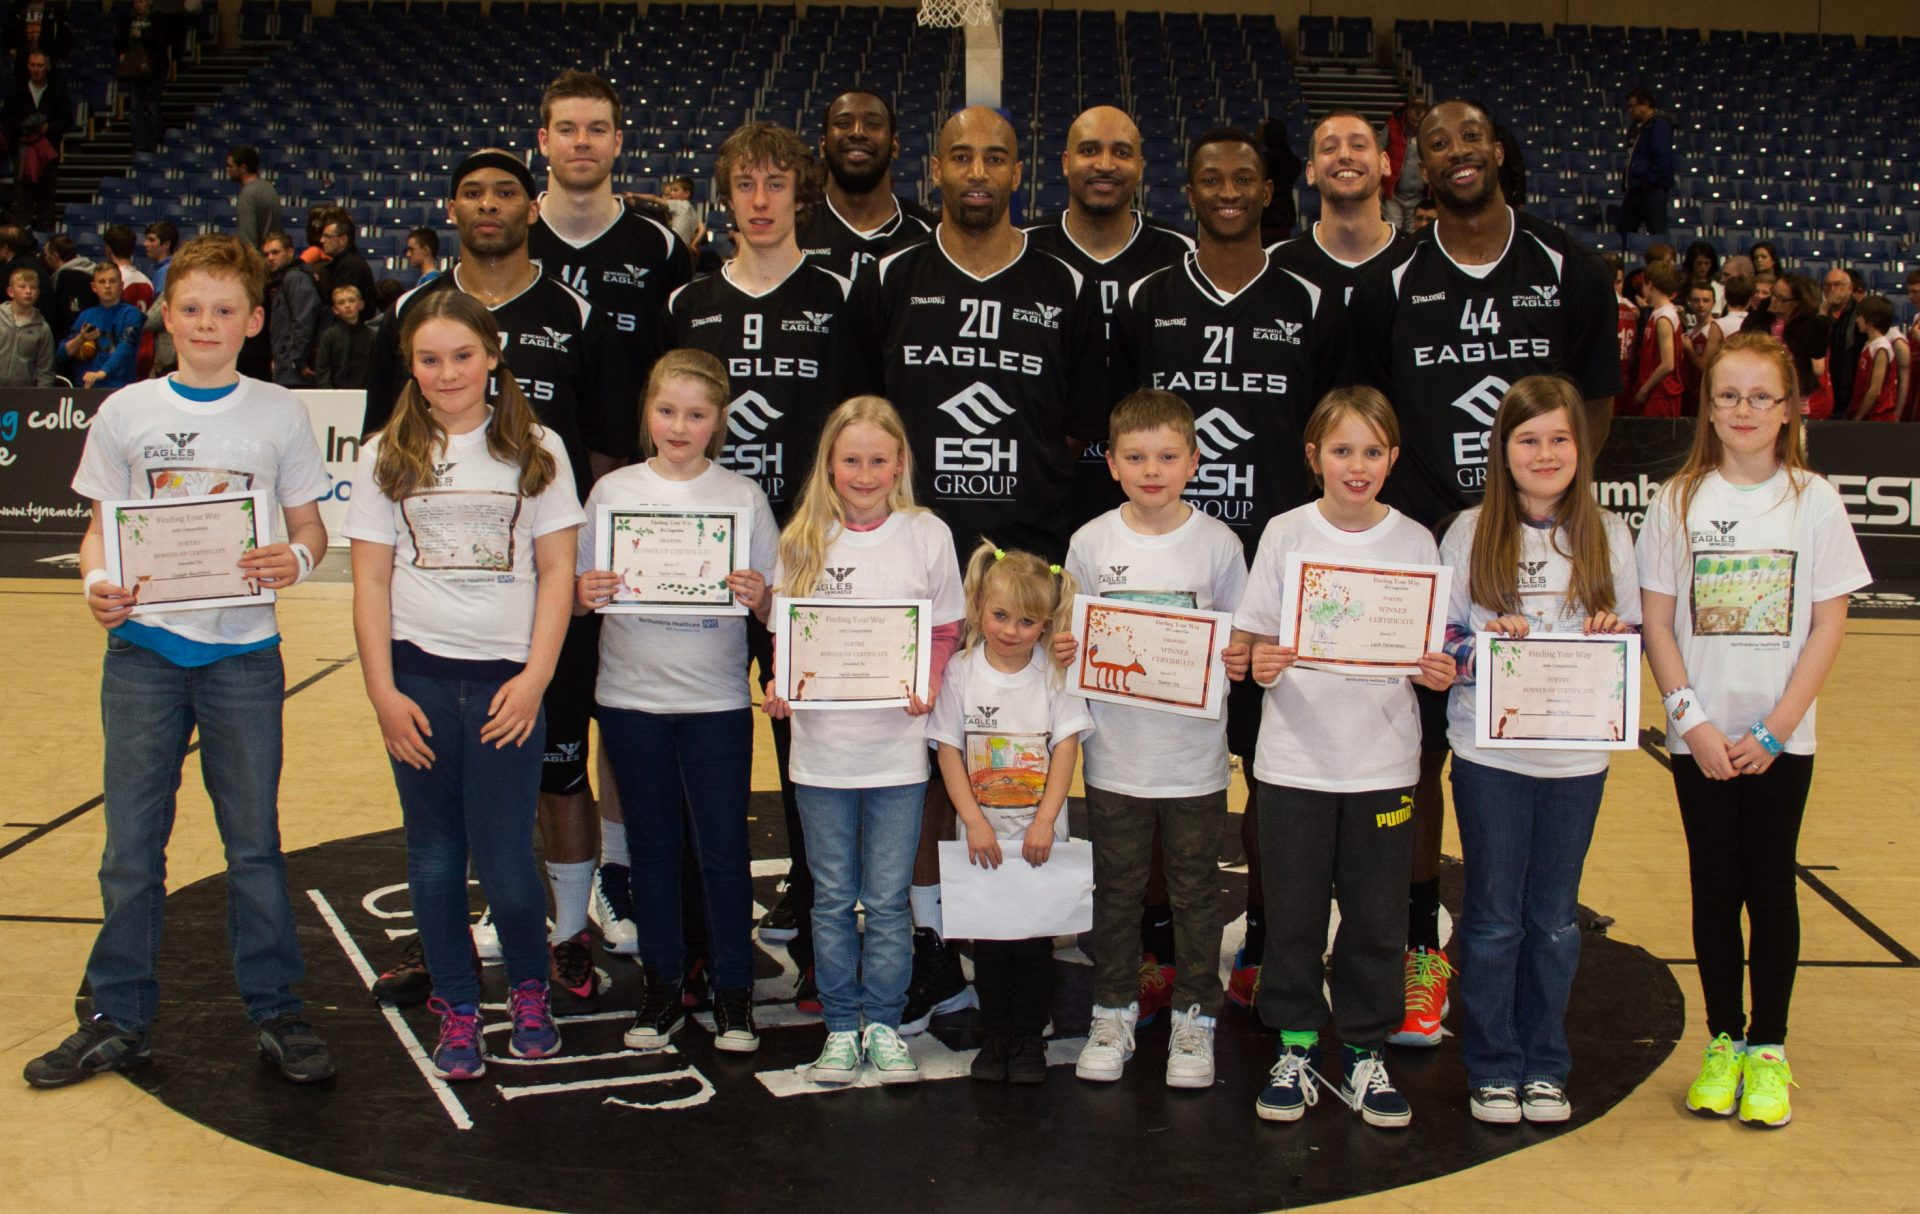 School art competition winners with the Newcastle Eagles